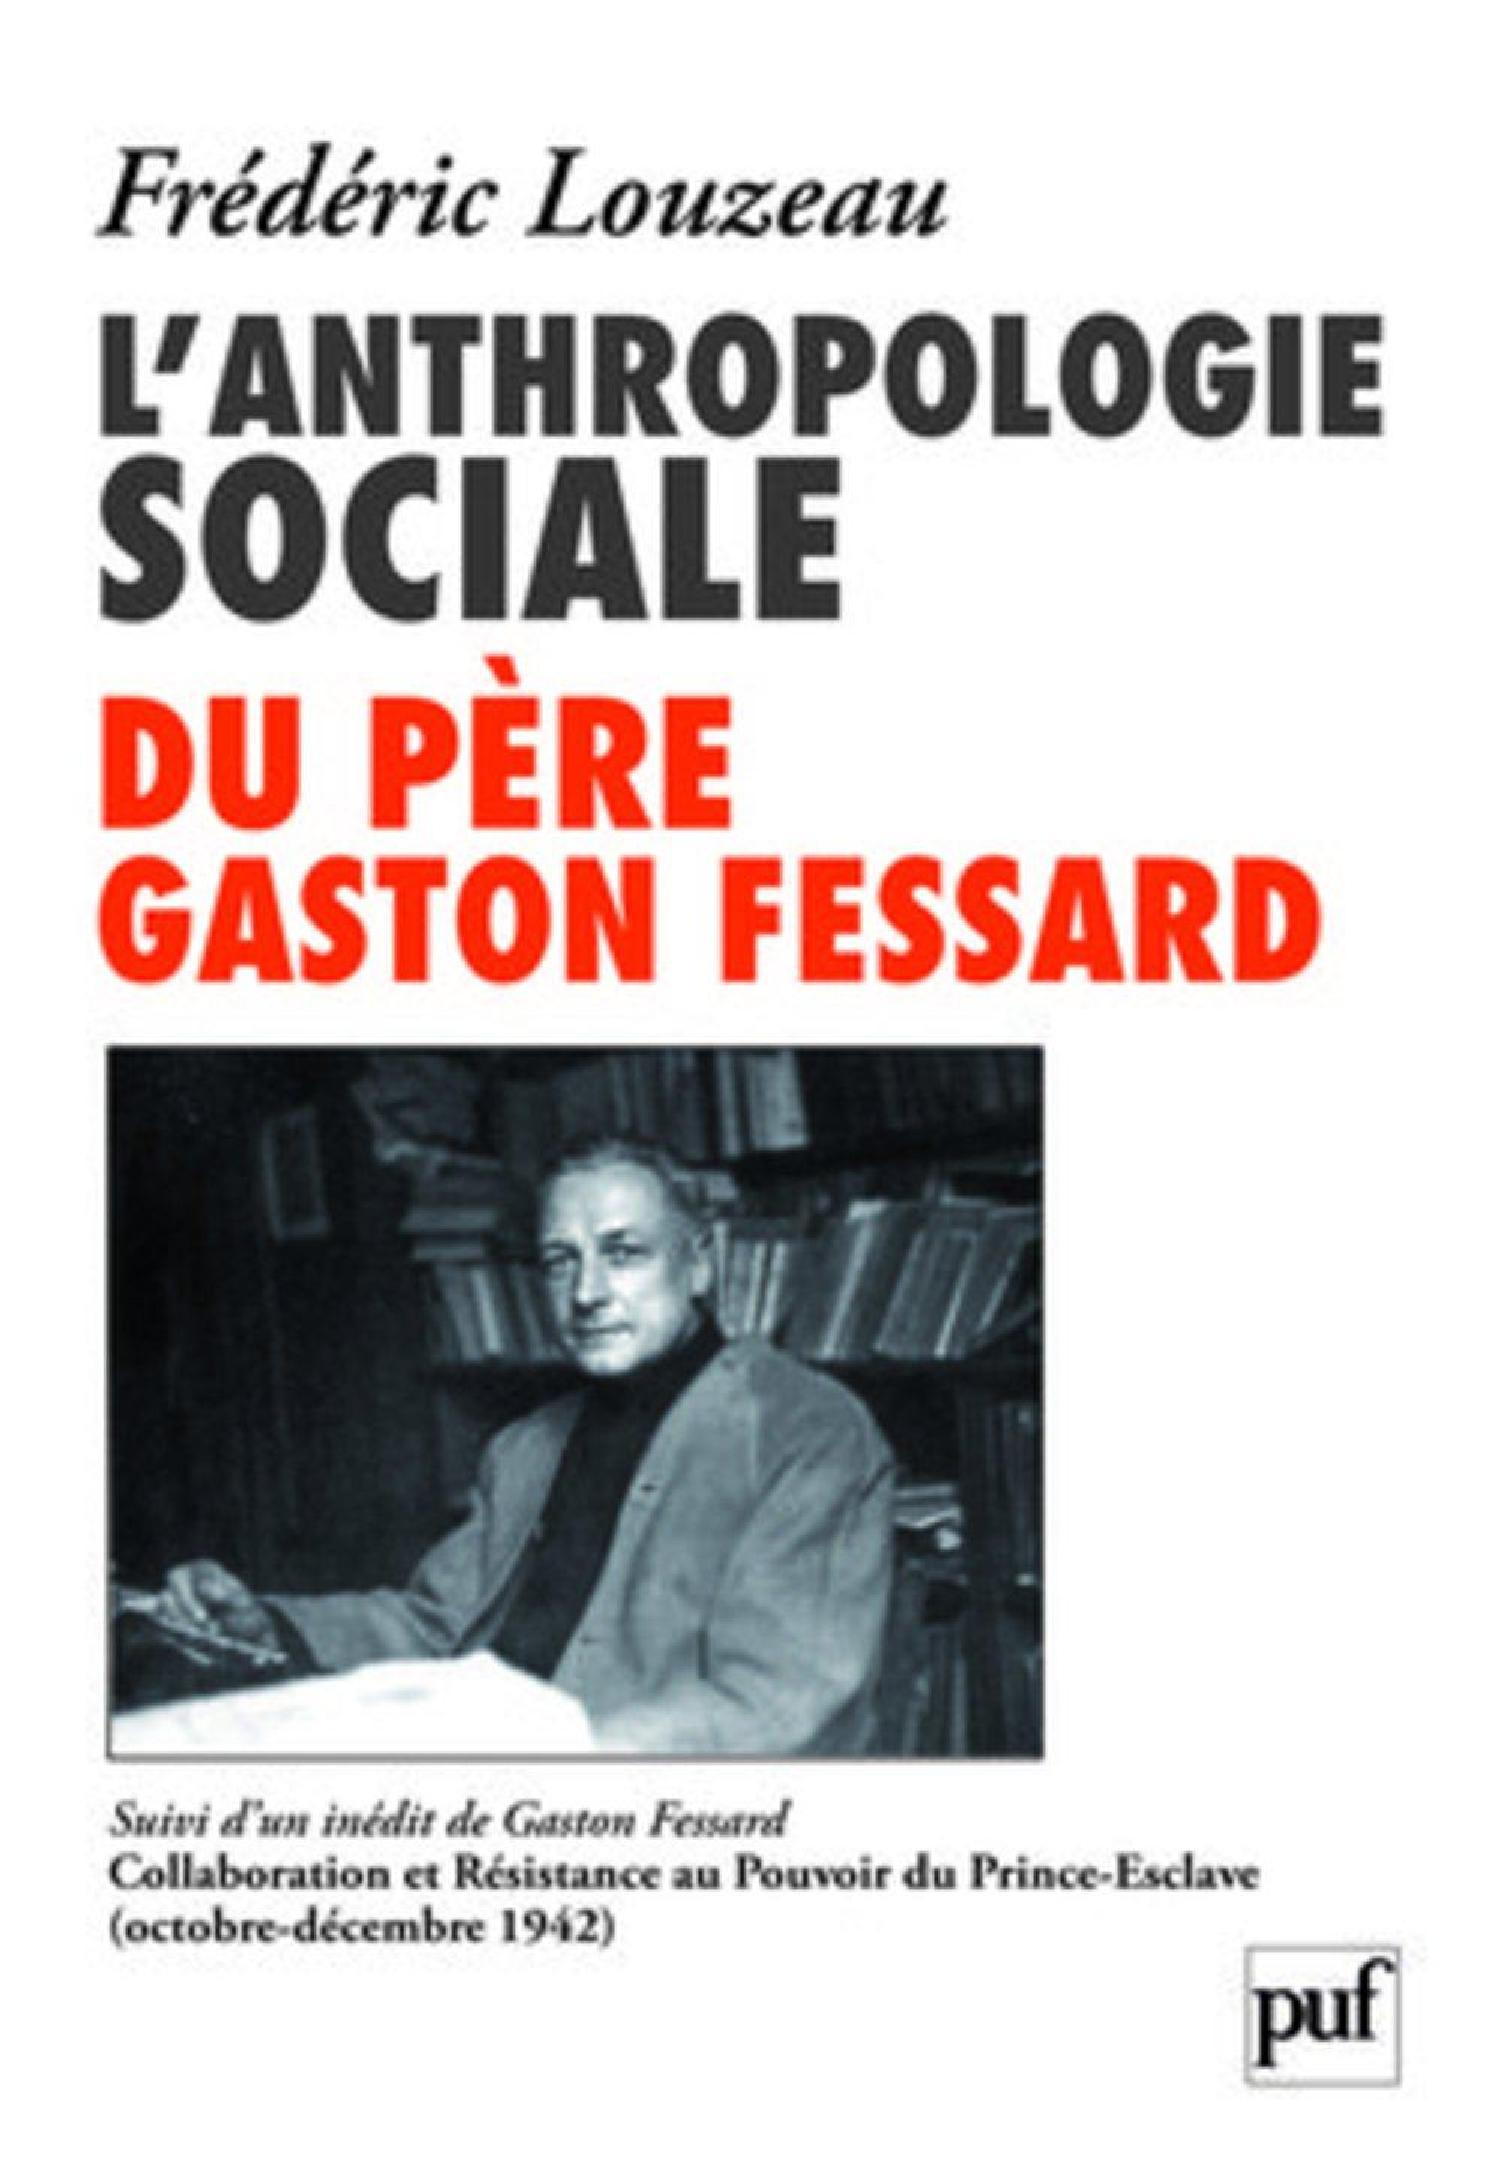 L'anthropologie sociale du Père Gaston Fessard